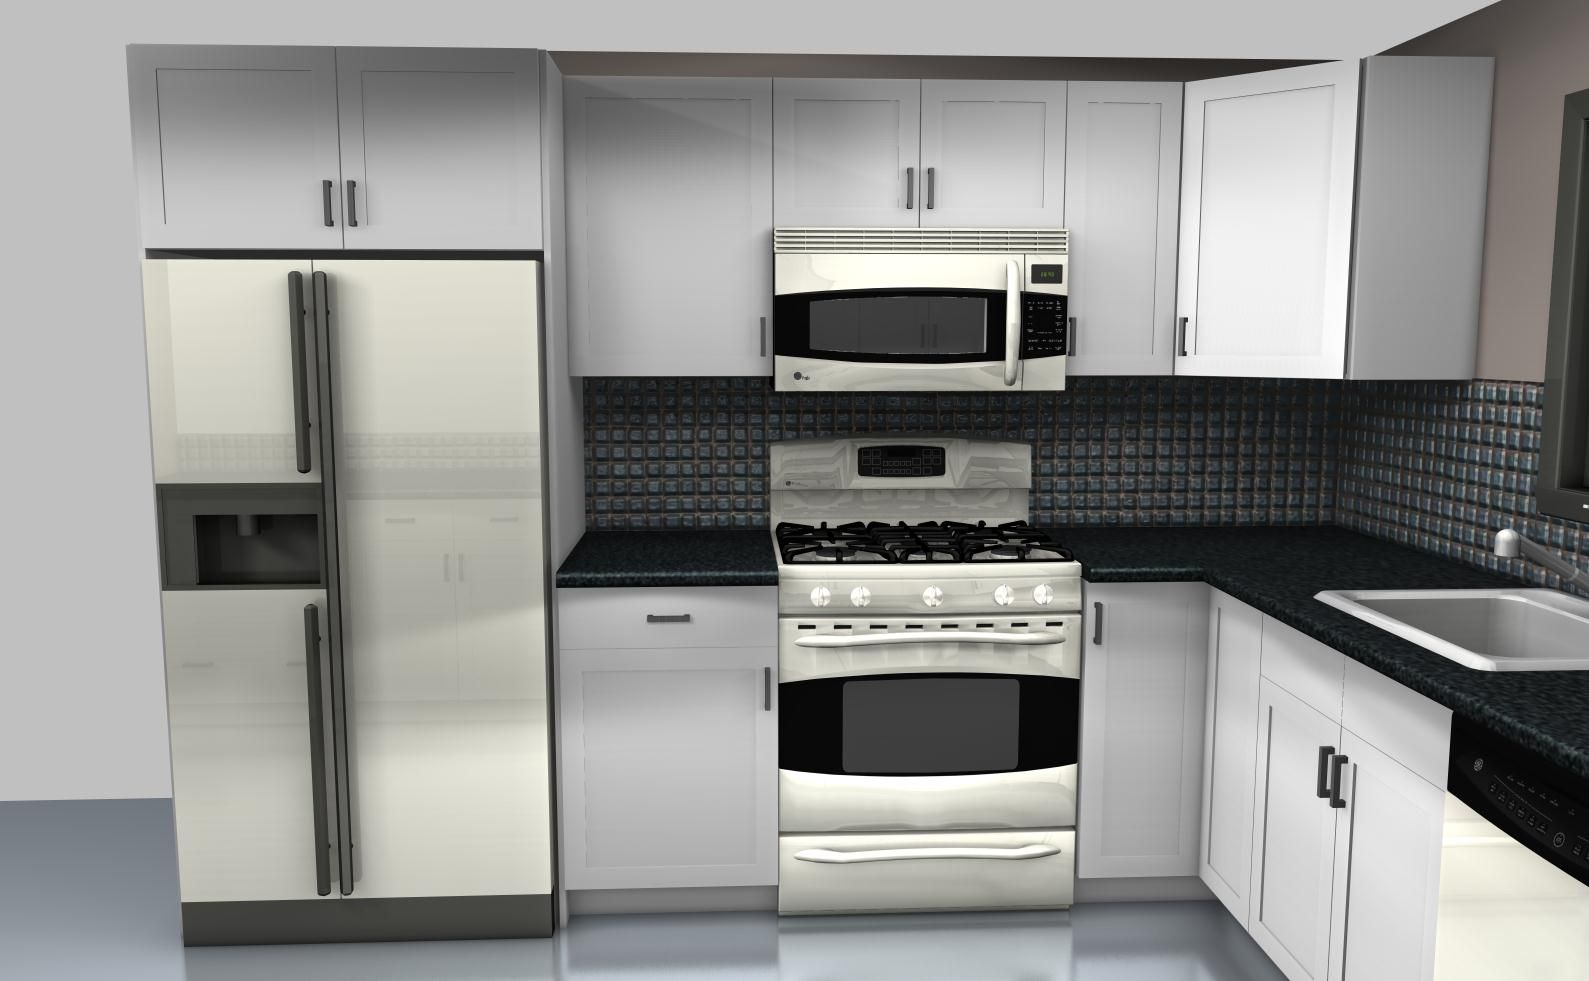 Old Kitchen Stove And Fridge On Same Wall Yahoo Search Results Modern Kitchen Design Glass Kitchen Cabinets L Shaped Kitchen Designs